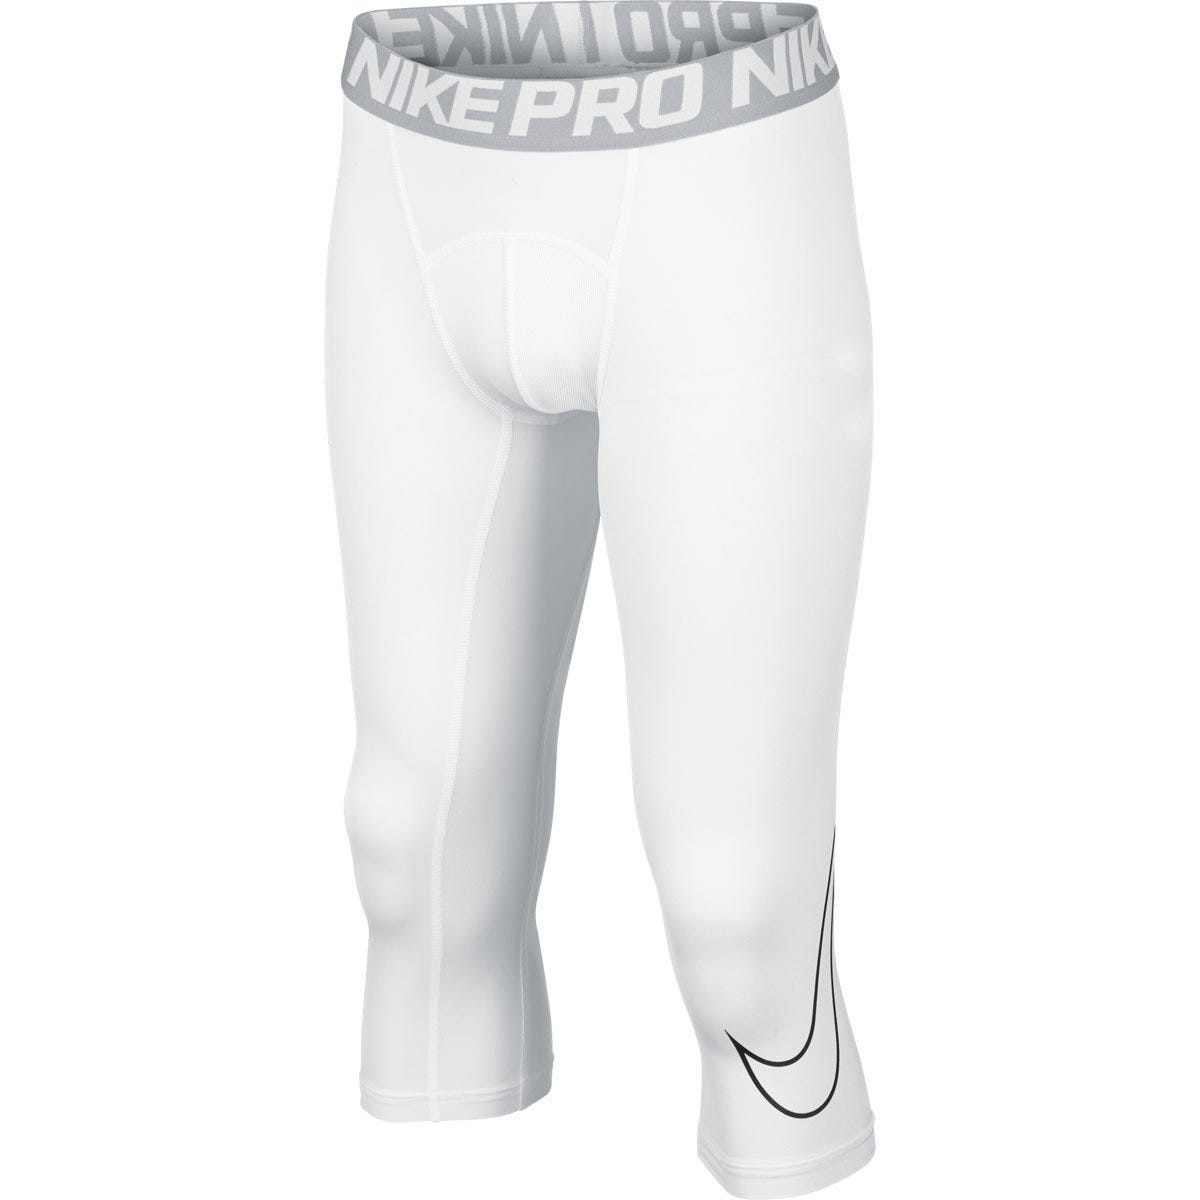 Nike Pro Cool HBR Youth Compression 3/4 Pant